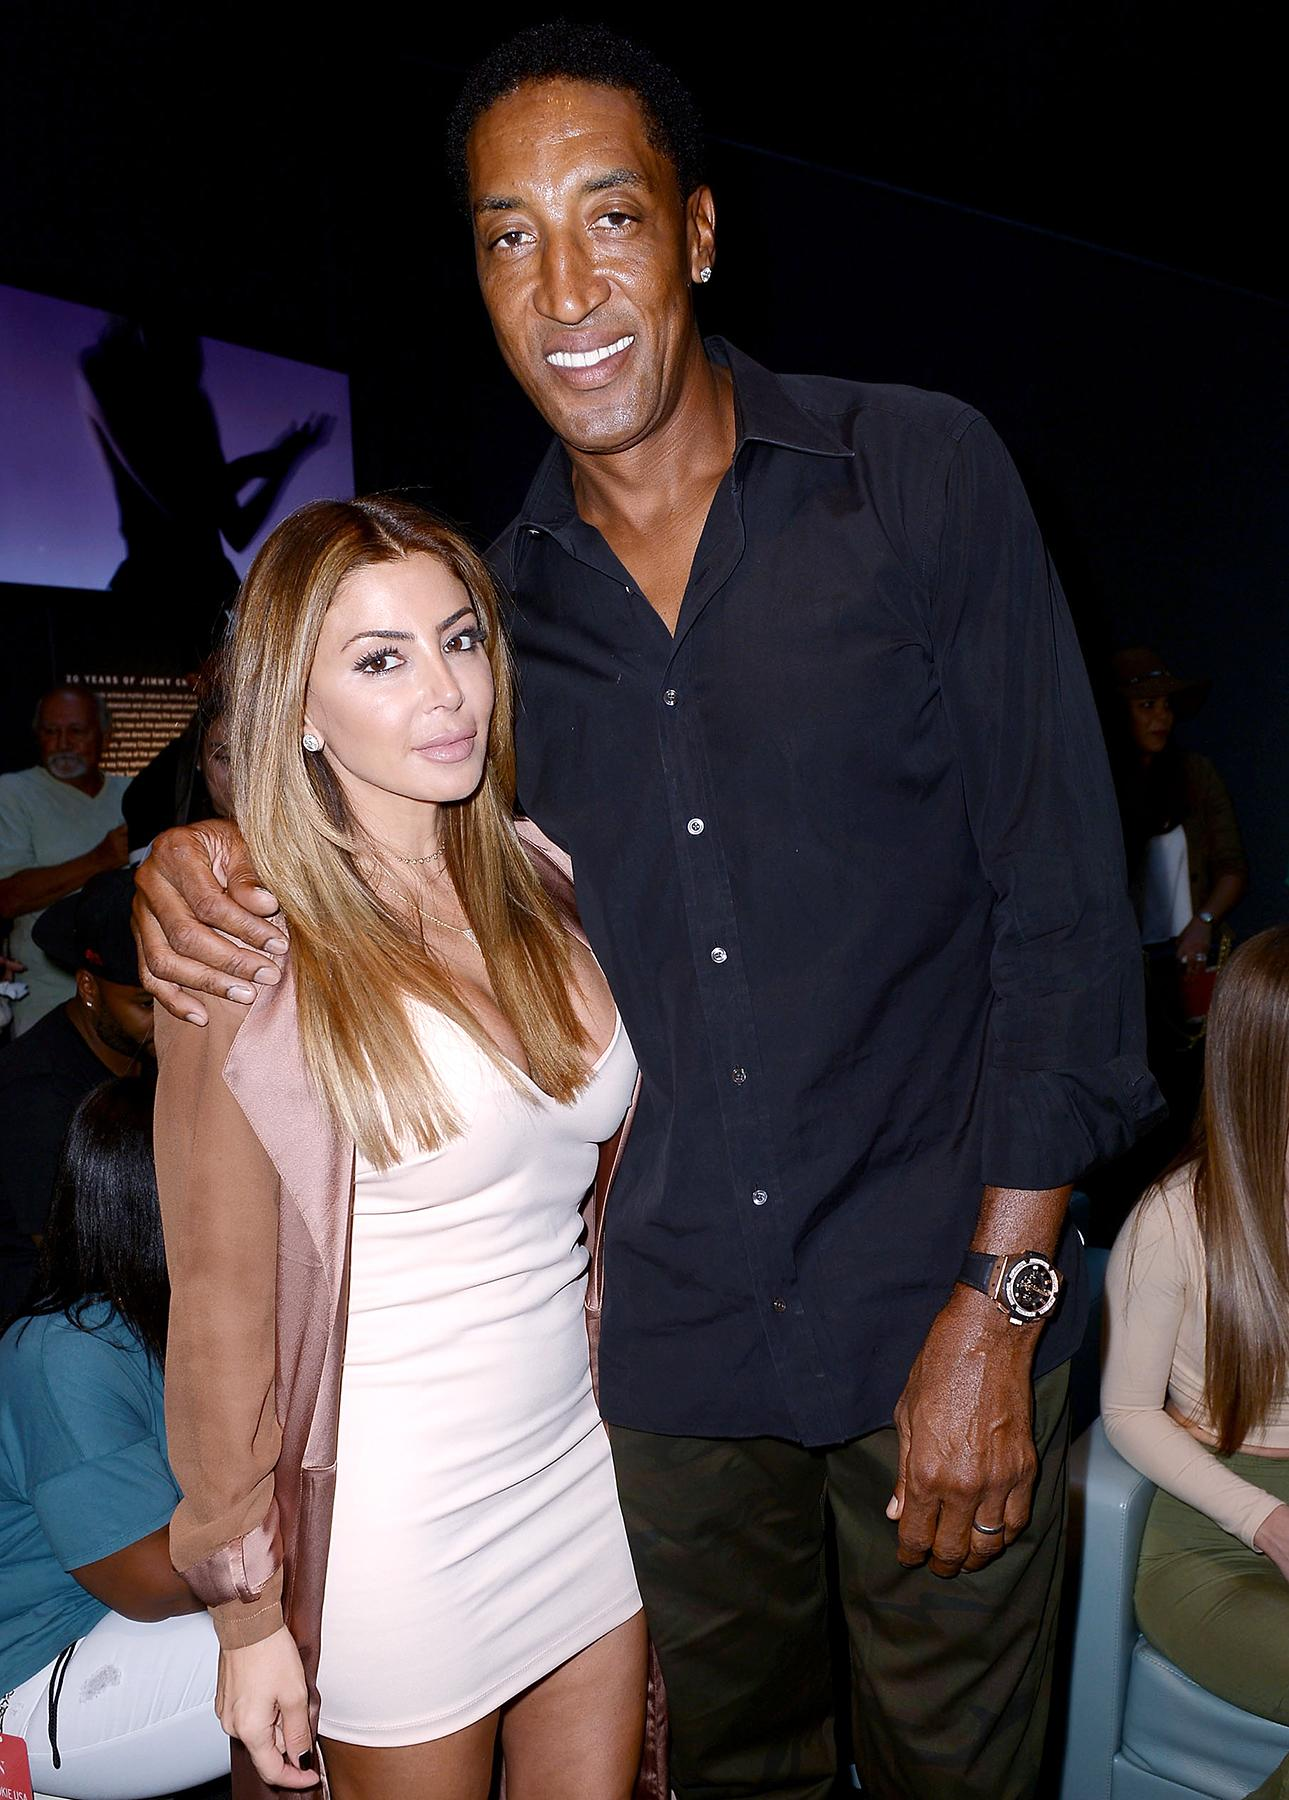 Larsa Pippen Cheated on Scottie Pippen With Future, Sources Claim